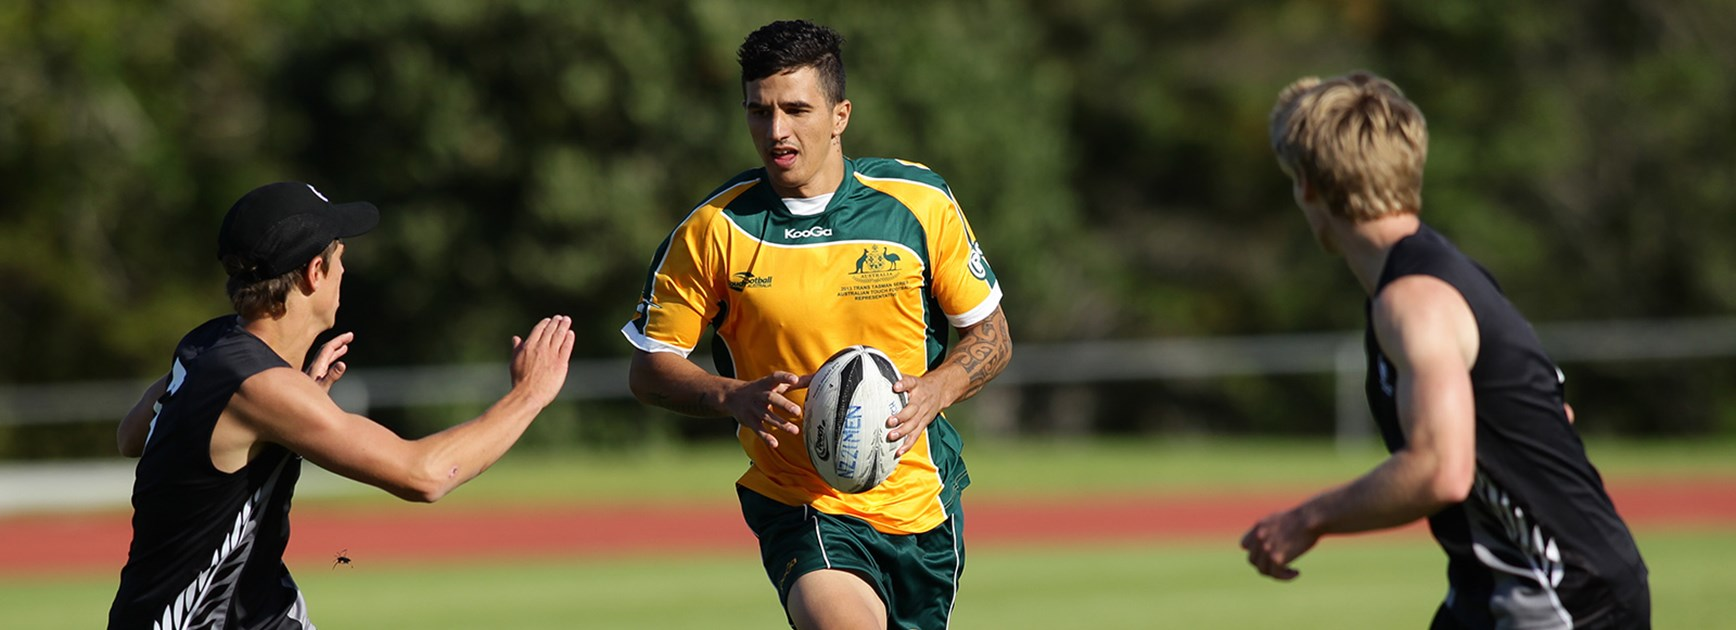 Jordan Marshall-King in action for Australia against New Zealand.